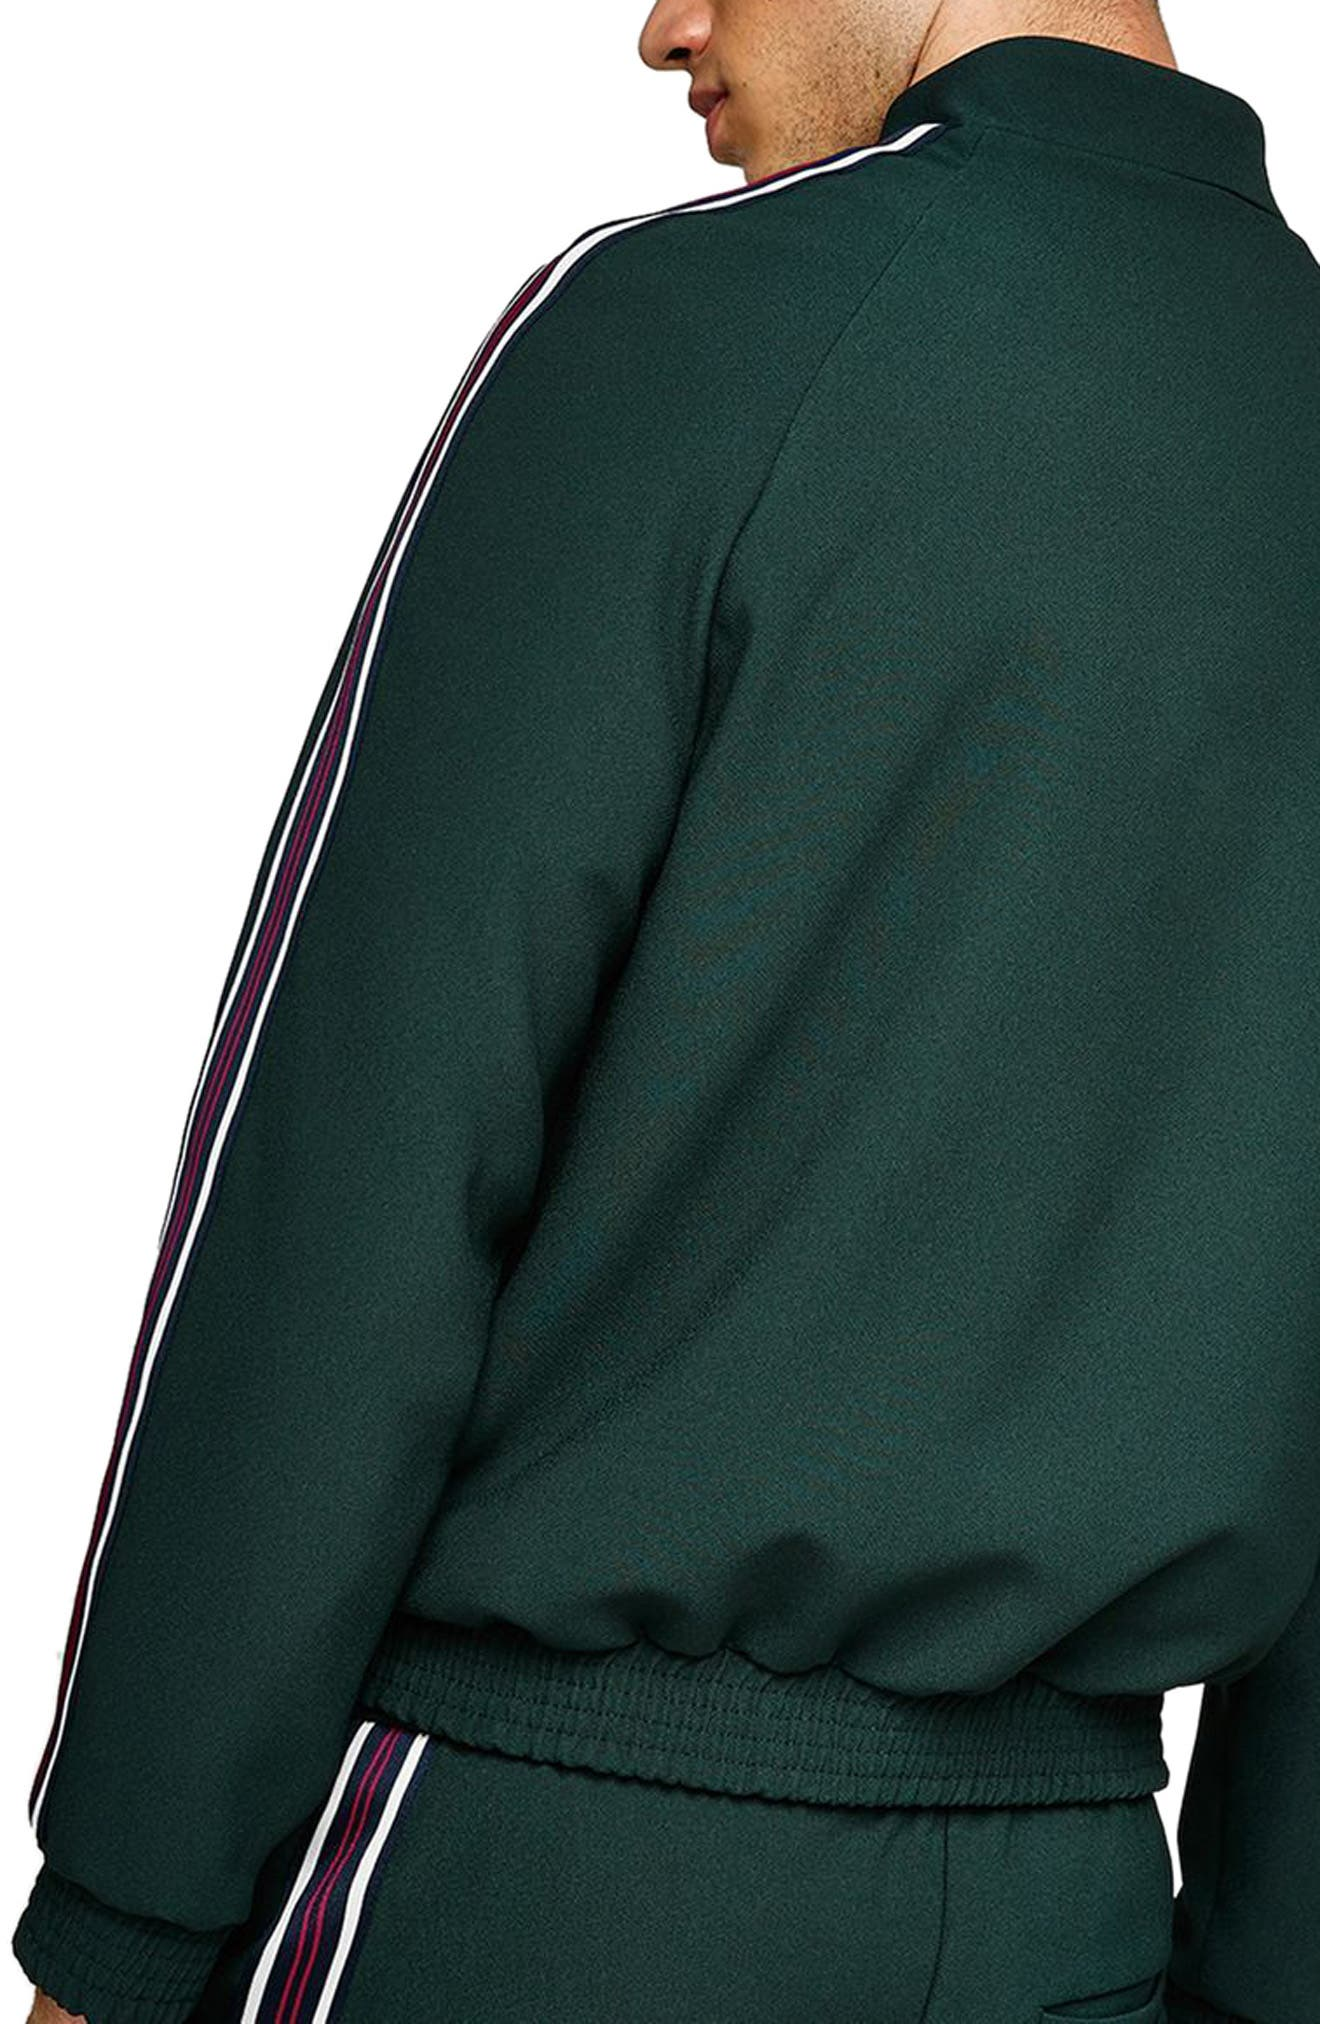 Track Jacket,                             Main thumbnail 1, color,                             300